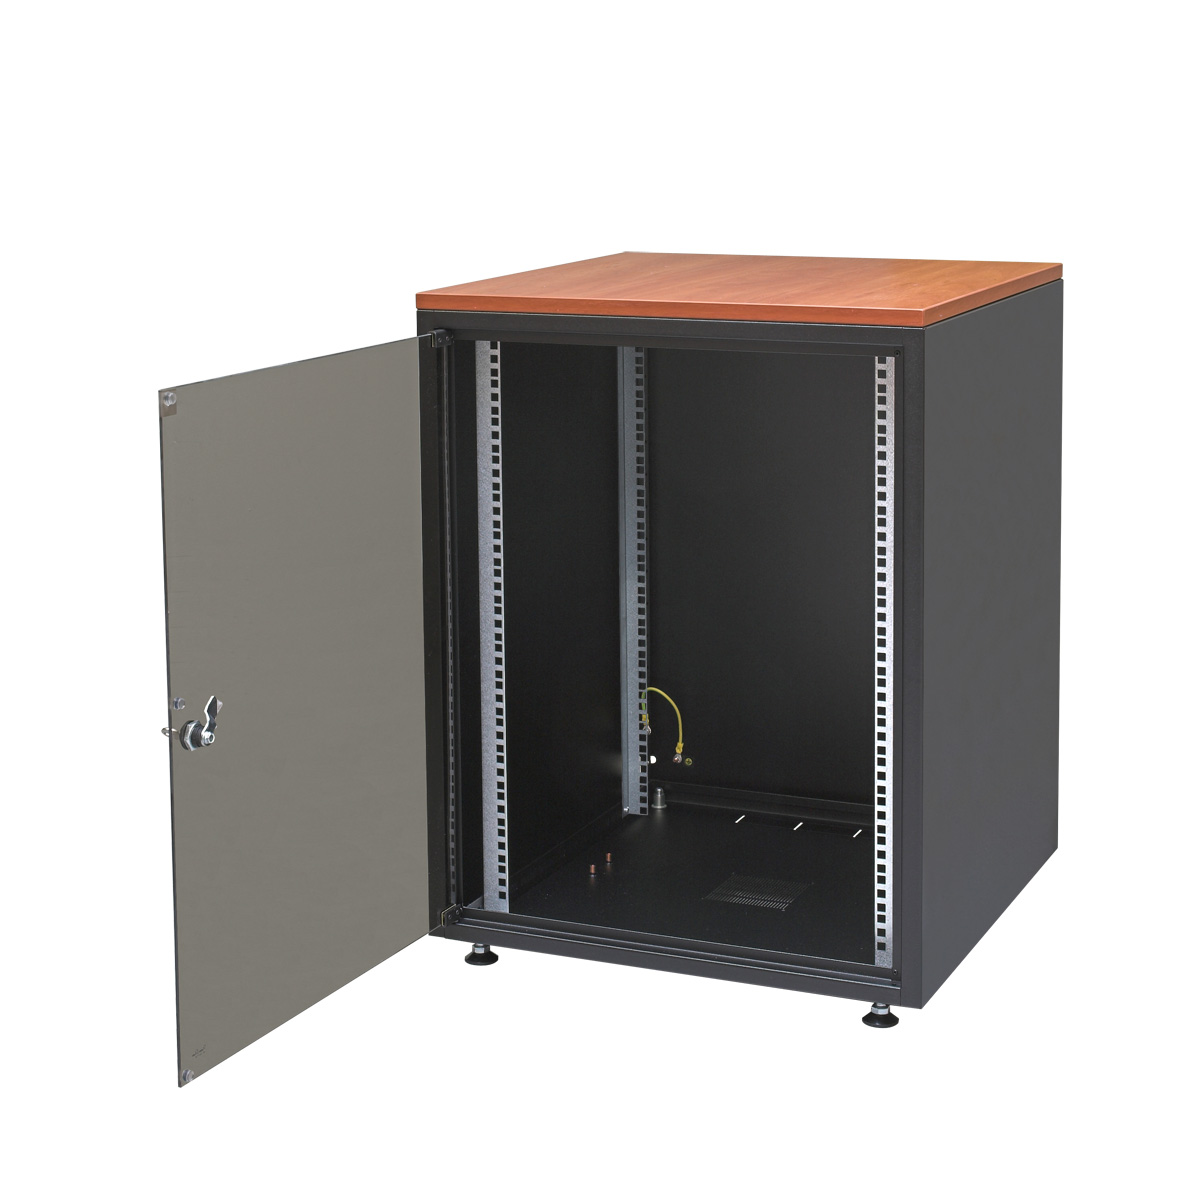 Designed For It Professionals To Securely Store Equipment